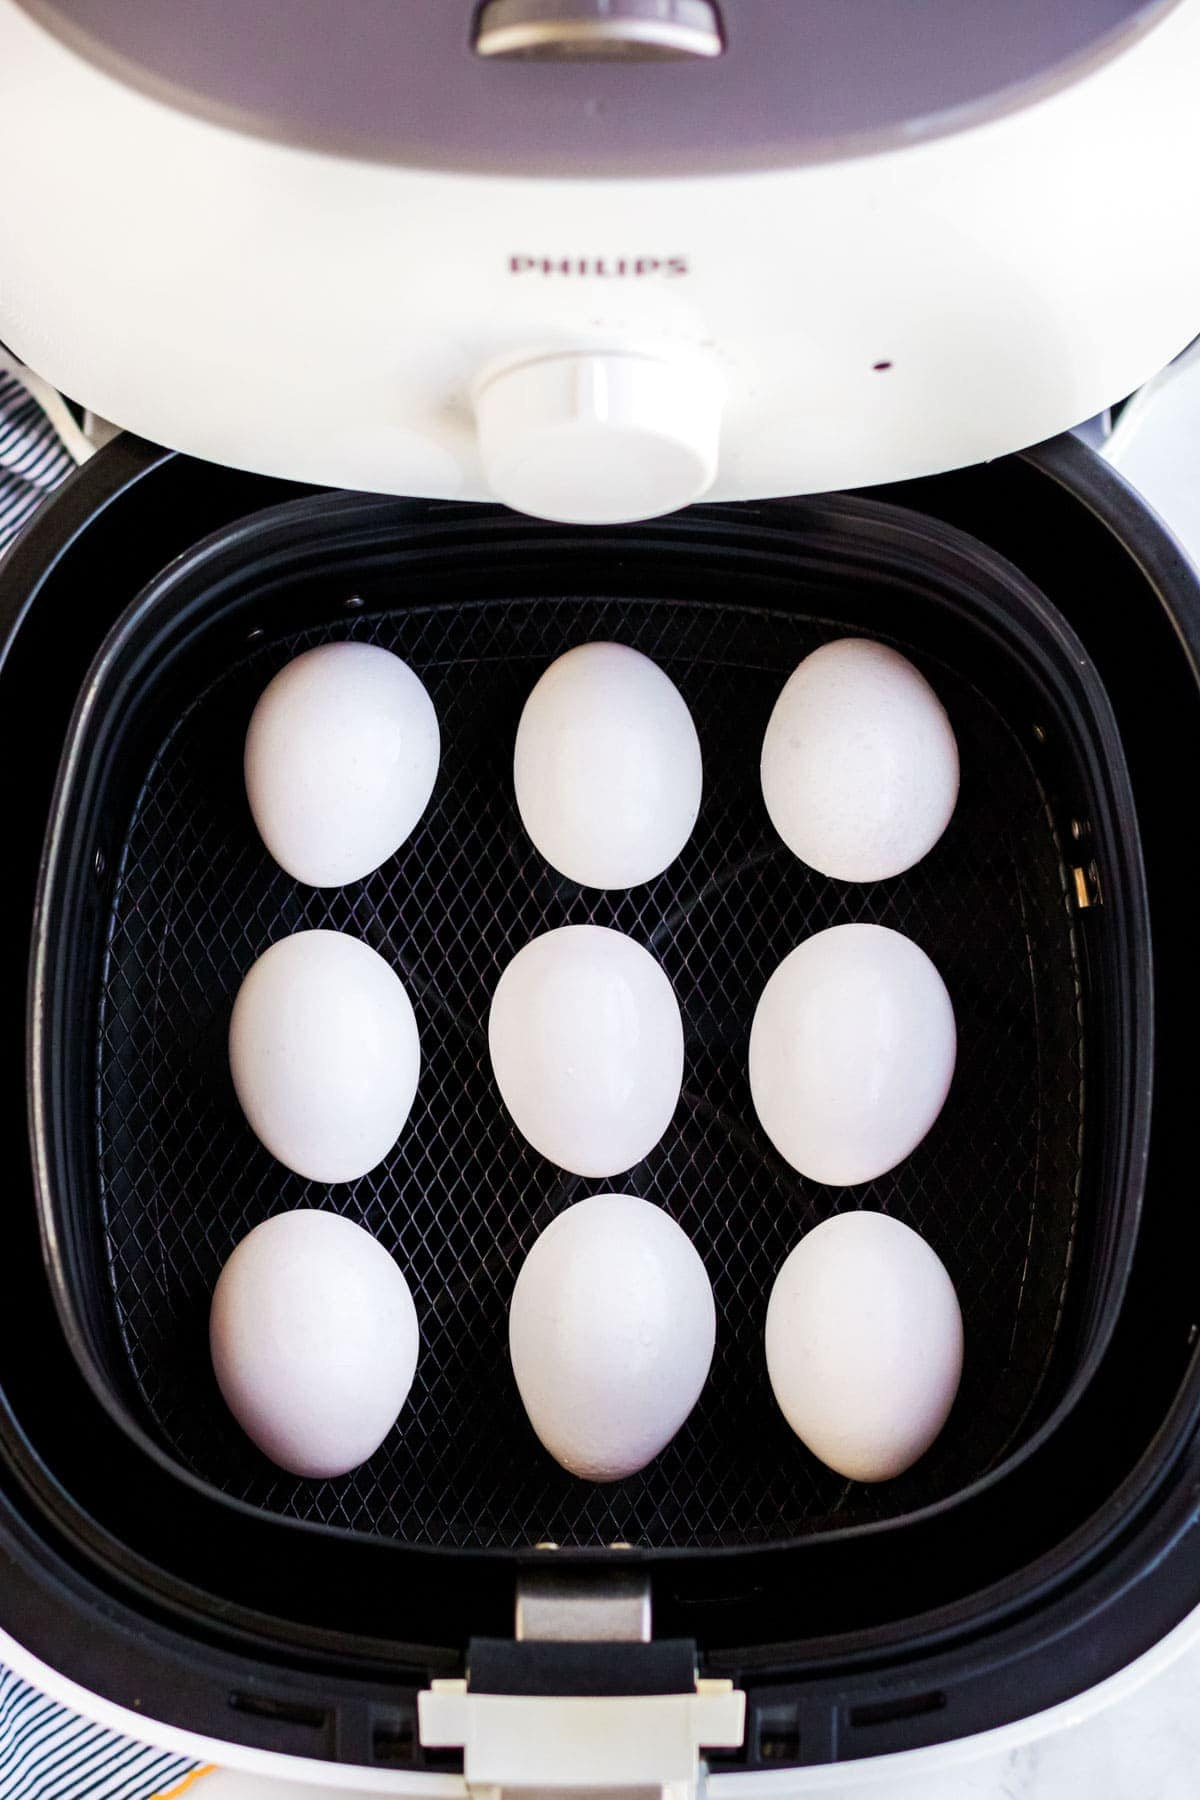 eggs in an air fryer basket